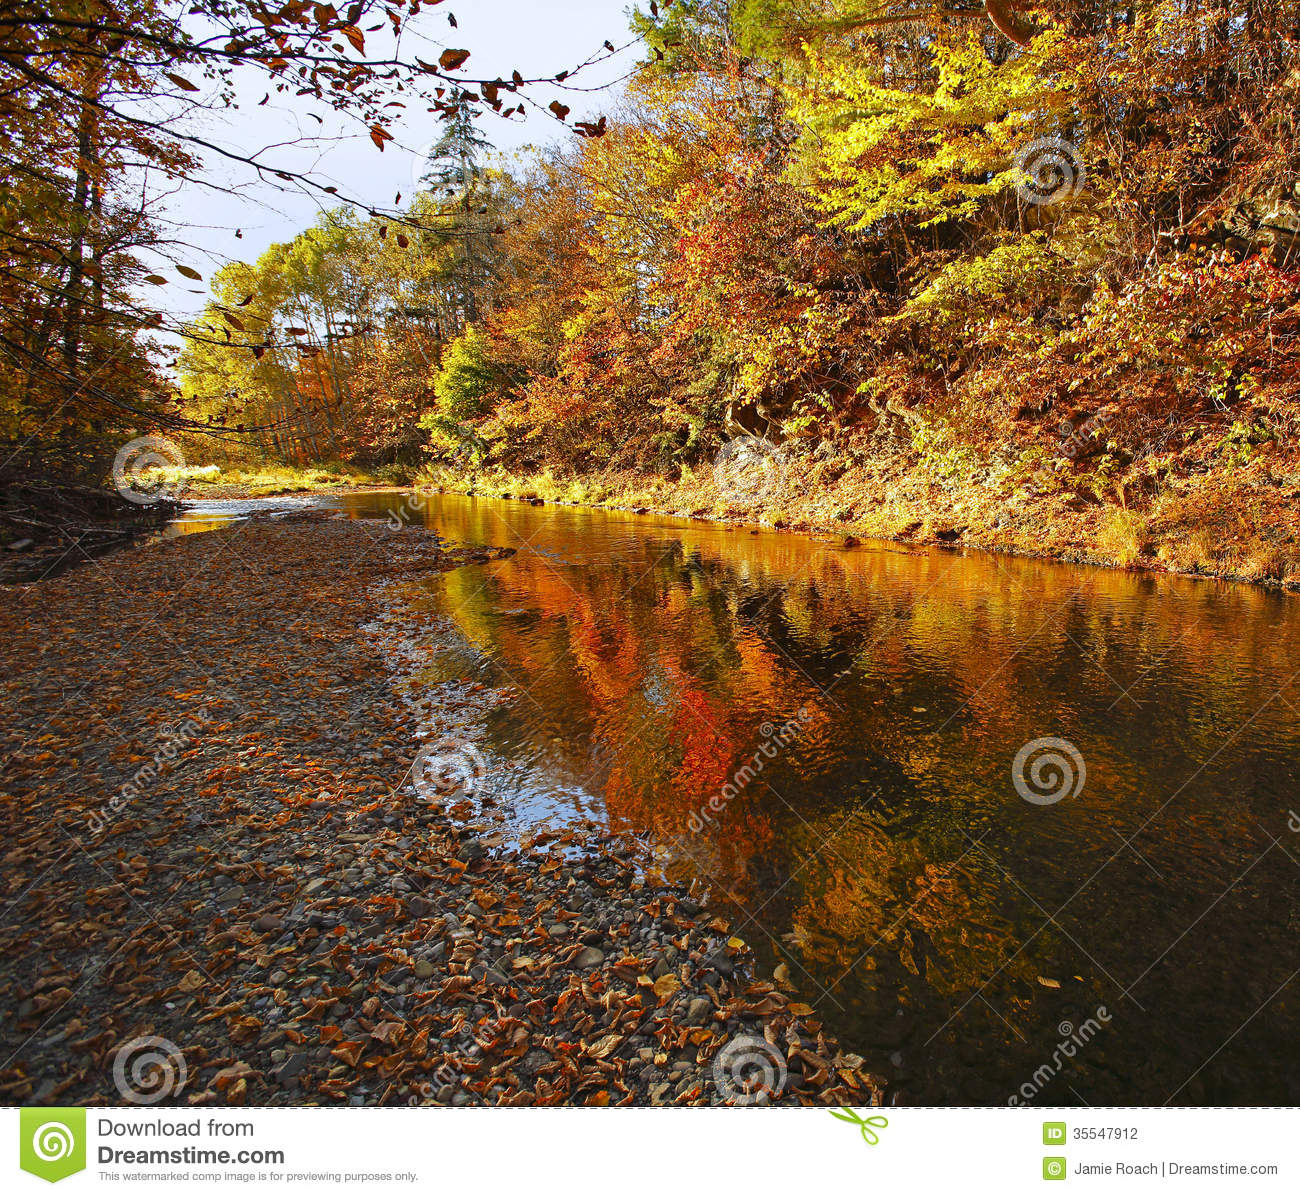 New Brunswick 468: Waterford Trout Creek Autumn Colors Reflection Stock Photo